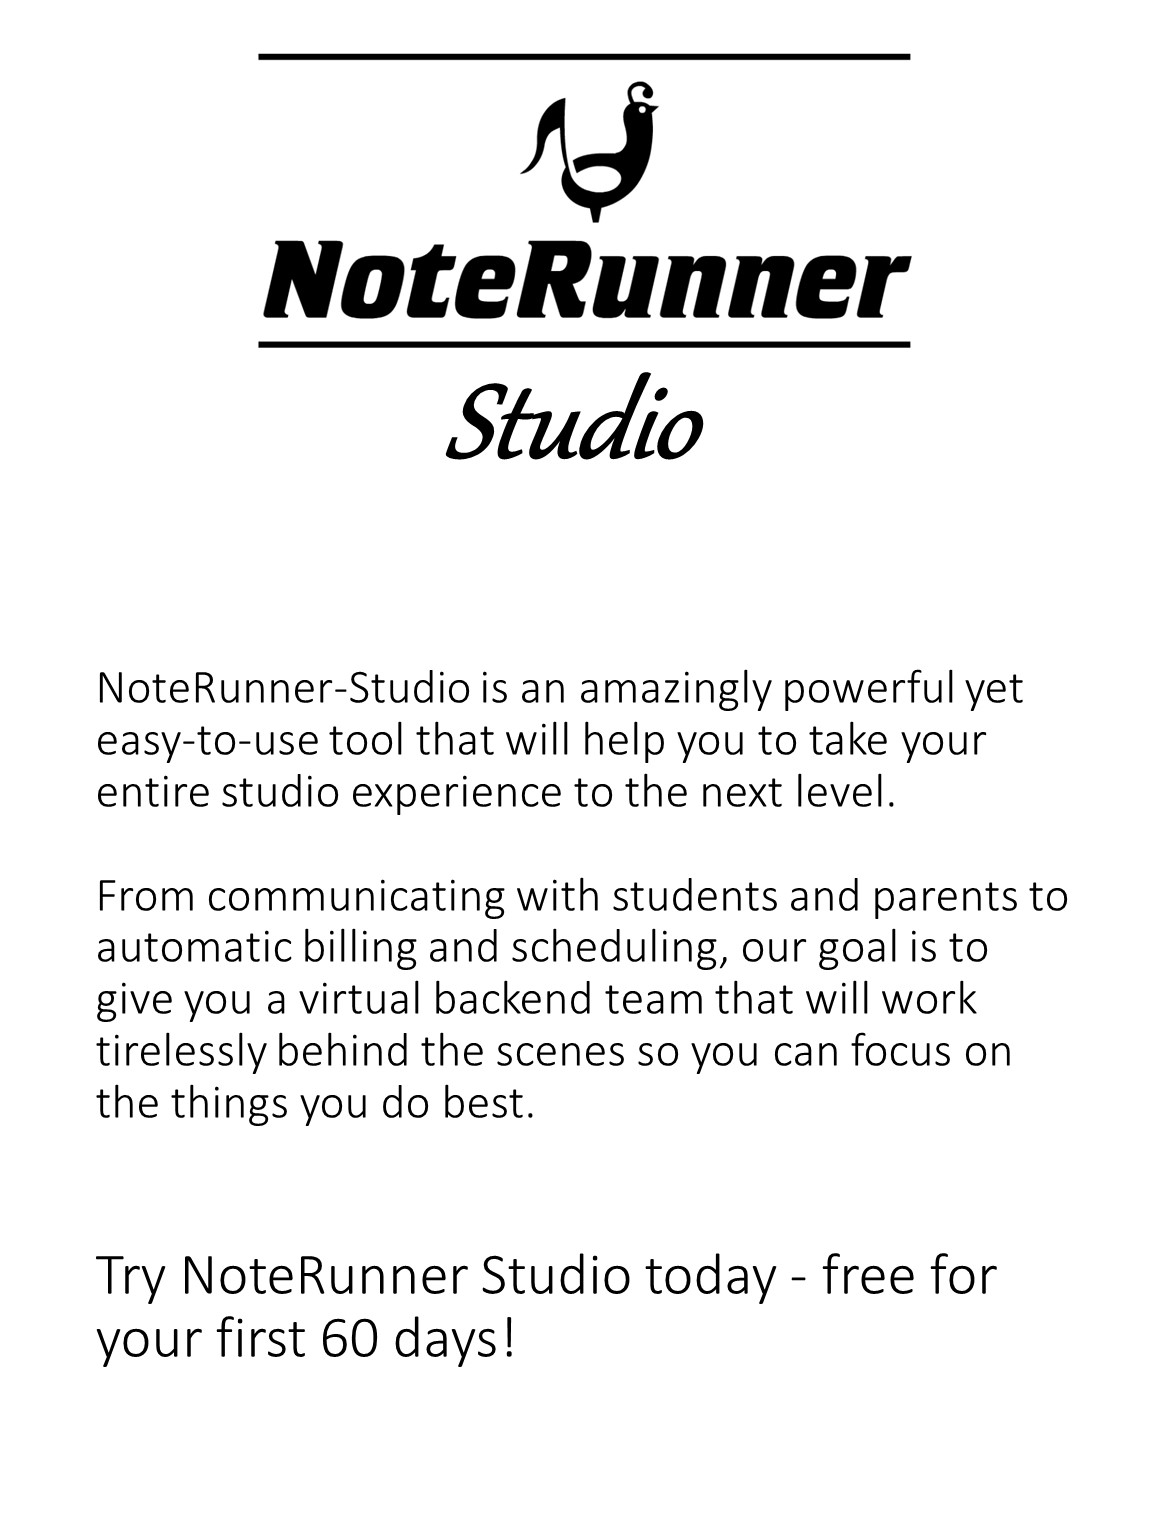 NoteRunner Studio - Preview Image - 60 day trial